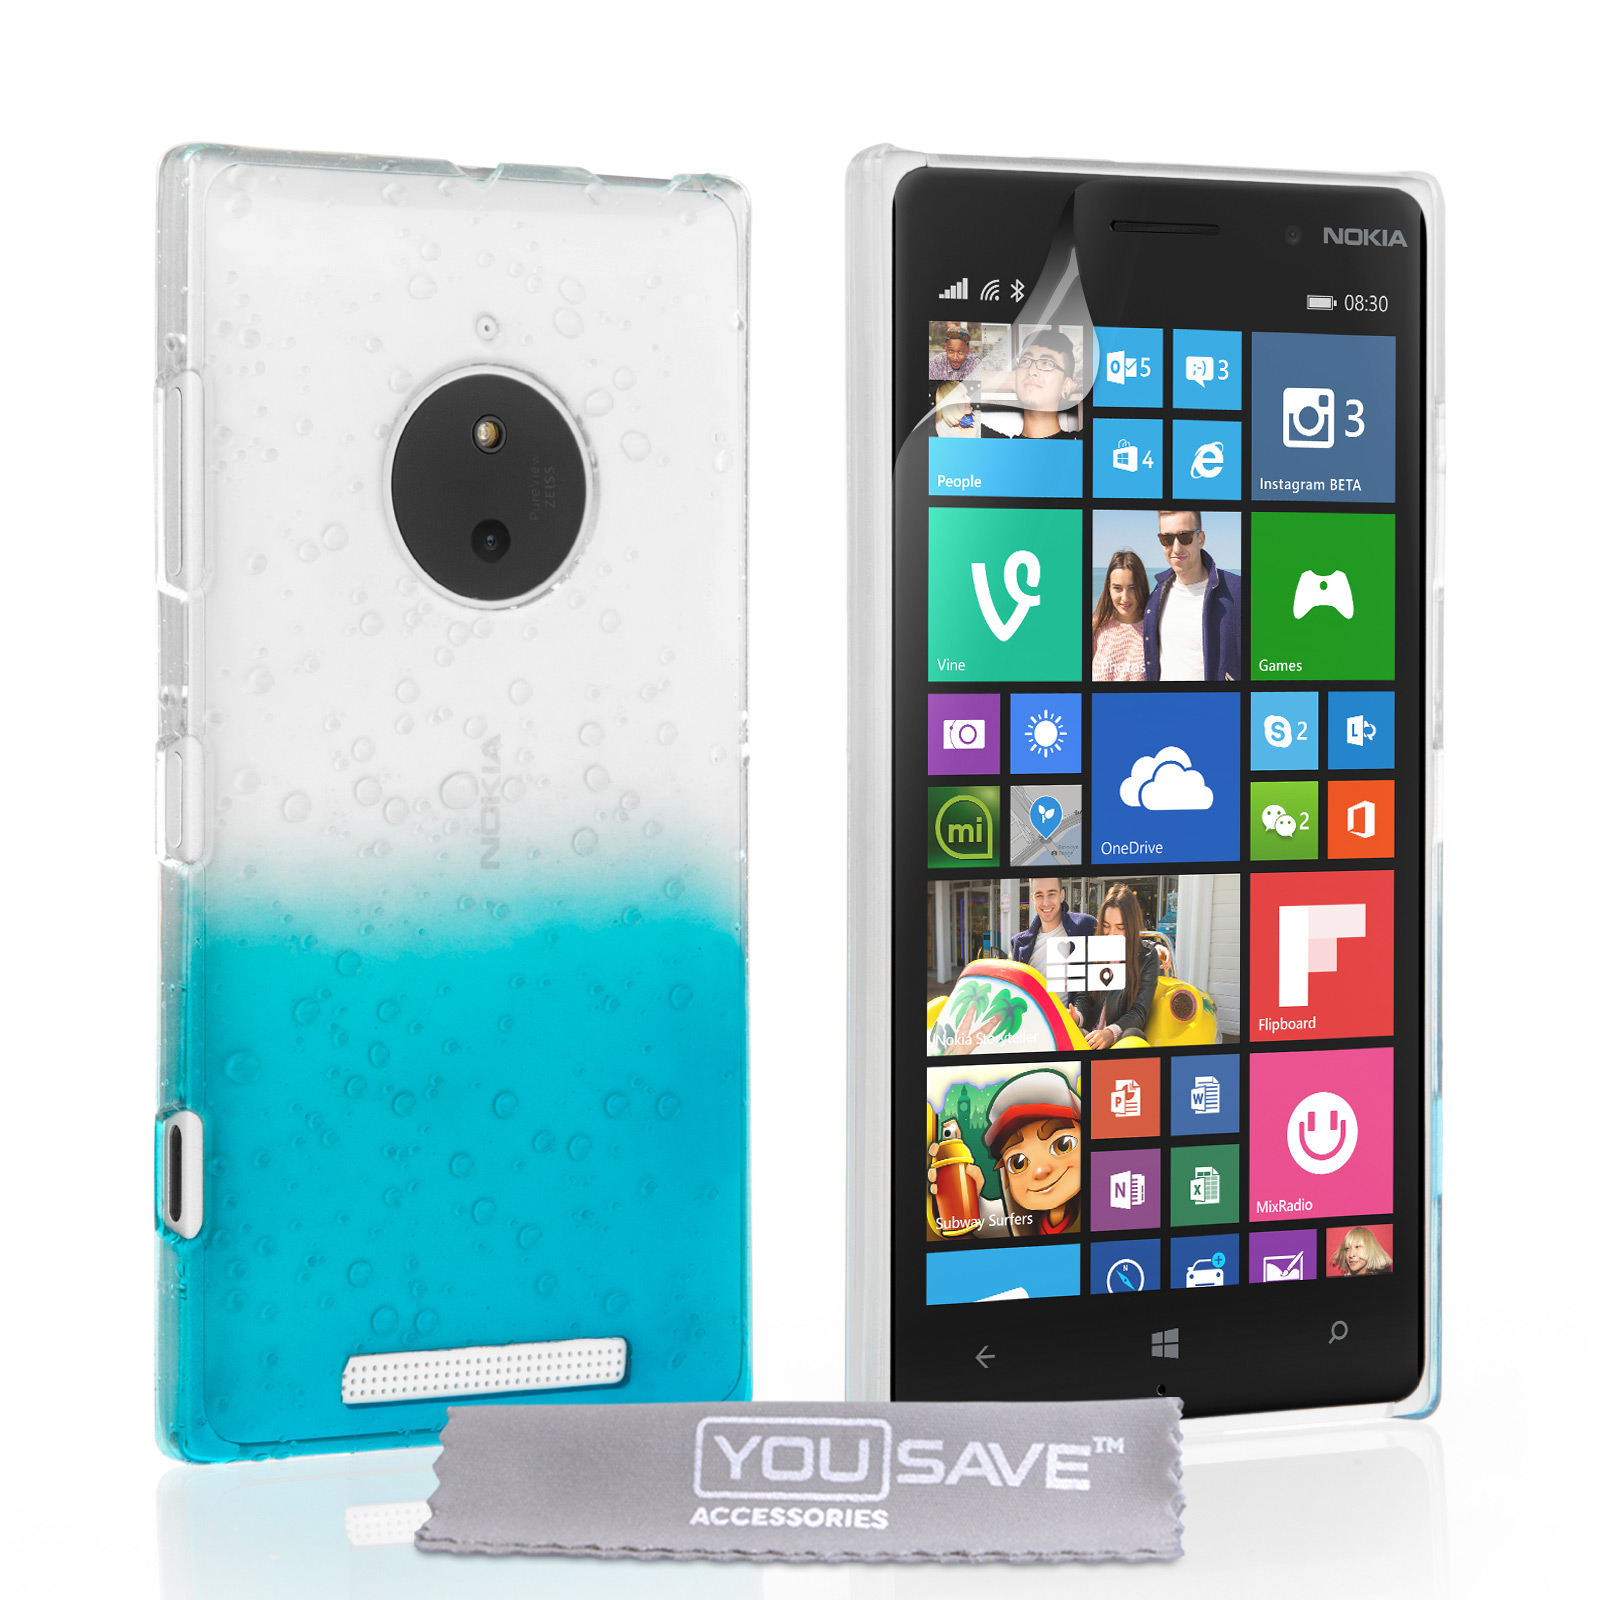 new product ab660 8e457 Yousave Accessories Nokia Lumia 830 Raindrop Hard Case - Blue-Clear